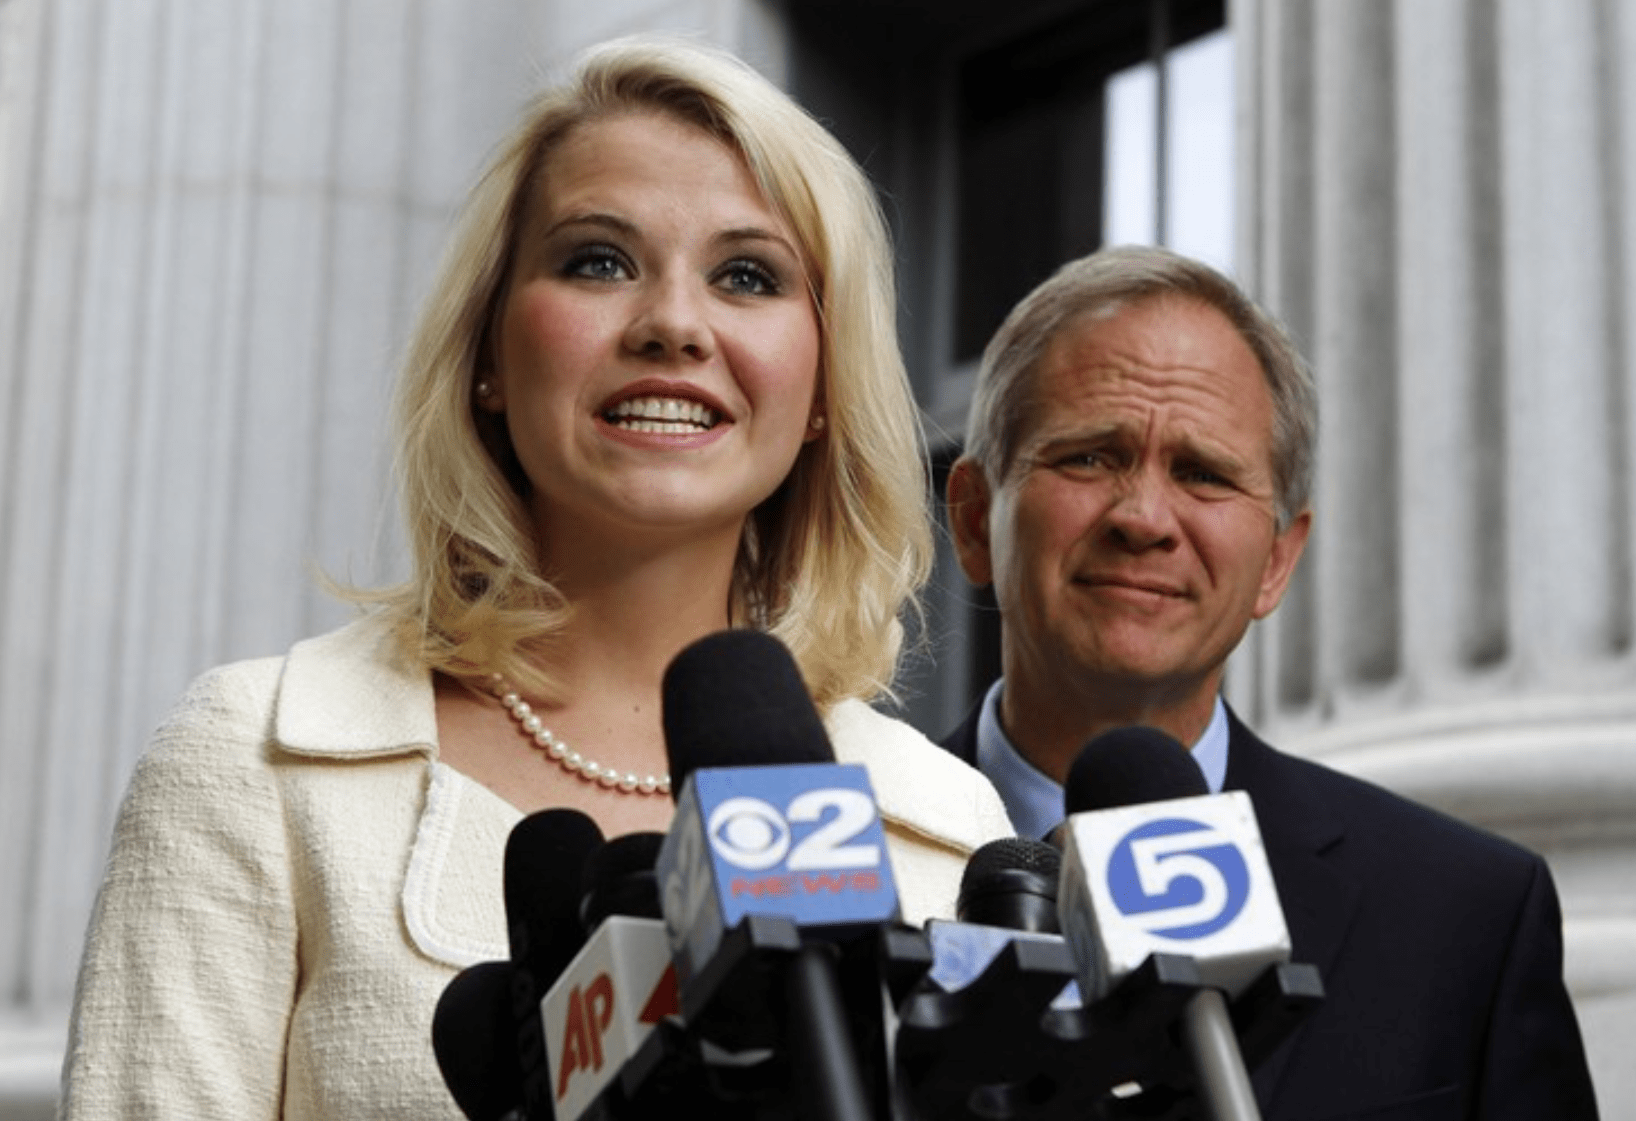 Ed Smart Father Of Elizabeth Smart Comes Out as Gay on Facebook